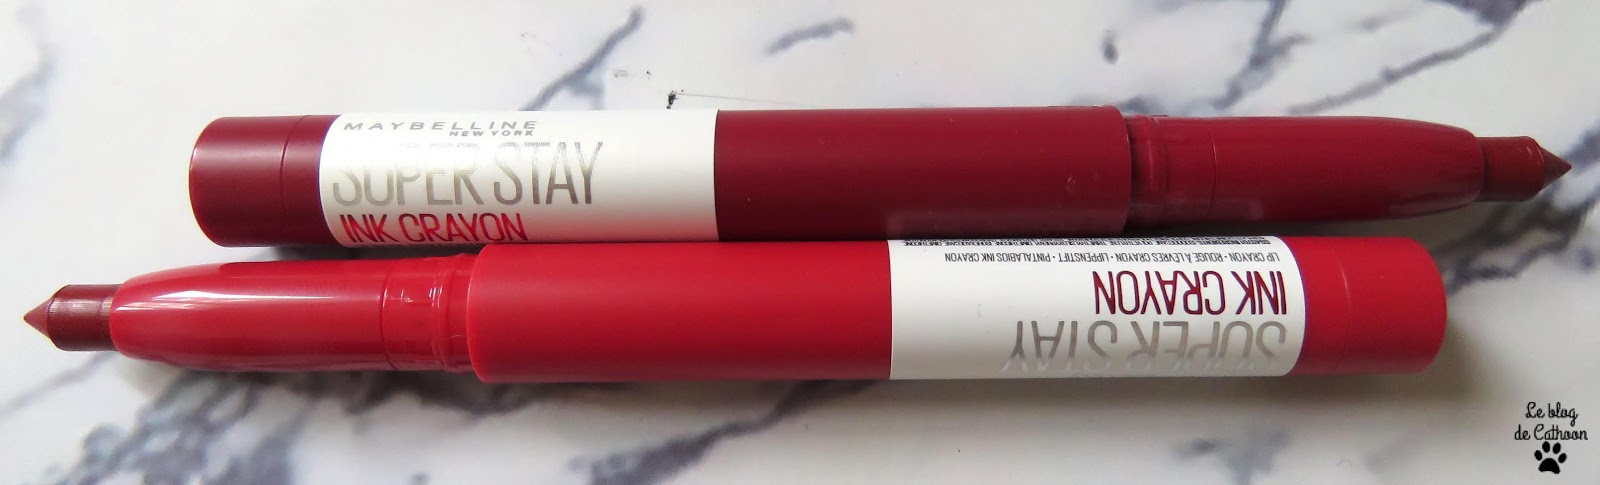 Superstay Ink Crayon - Maybelline